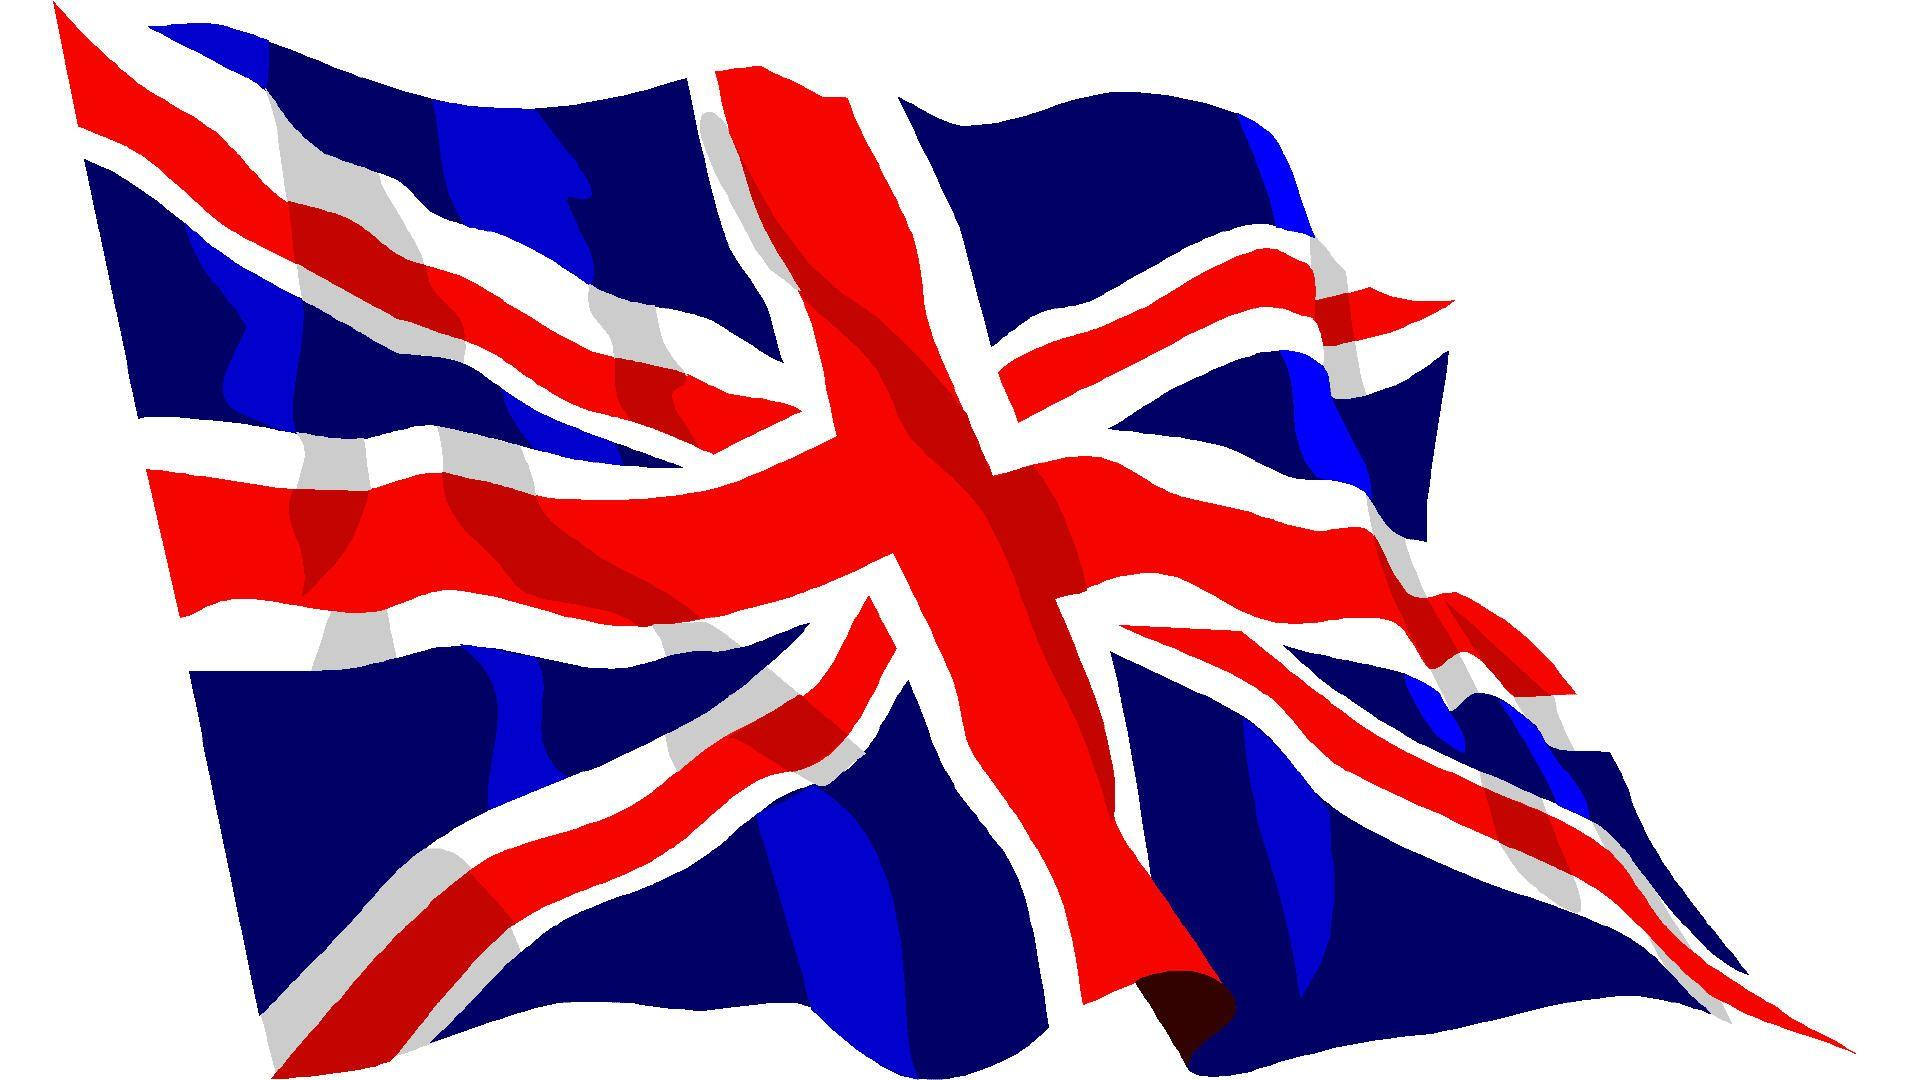 union jack flag wallpaper